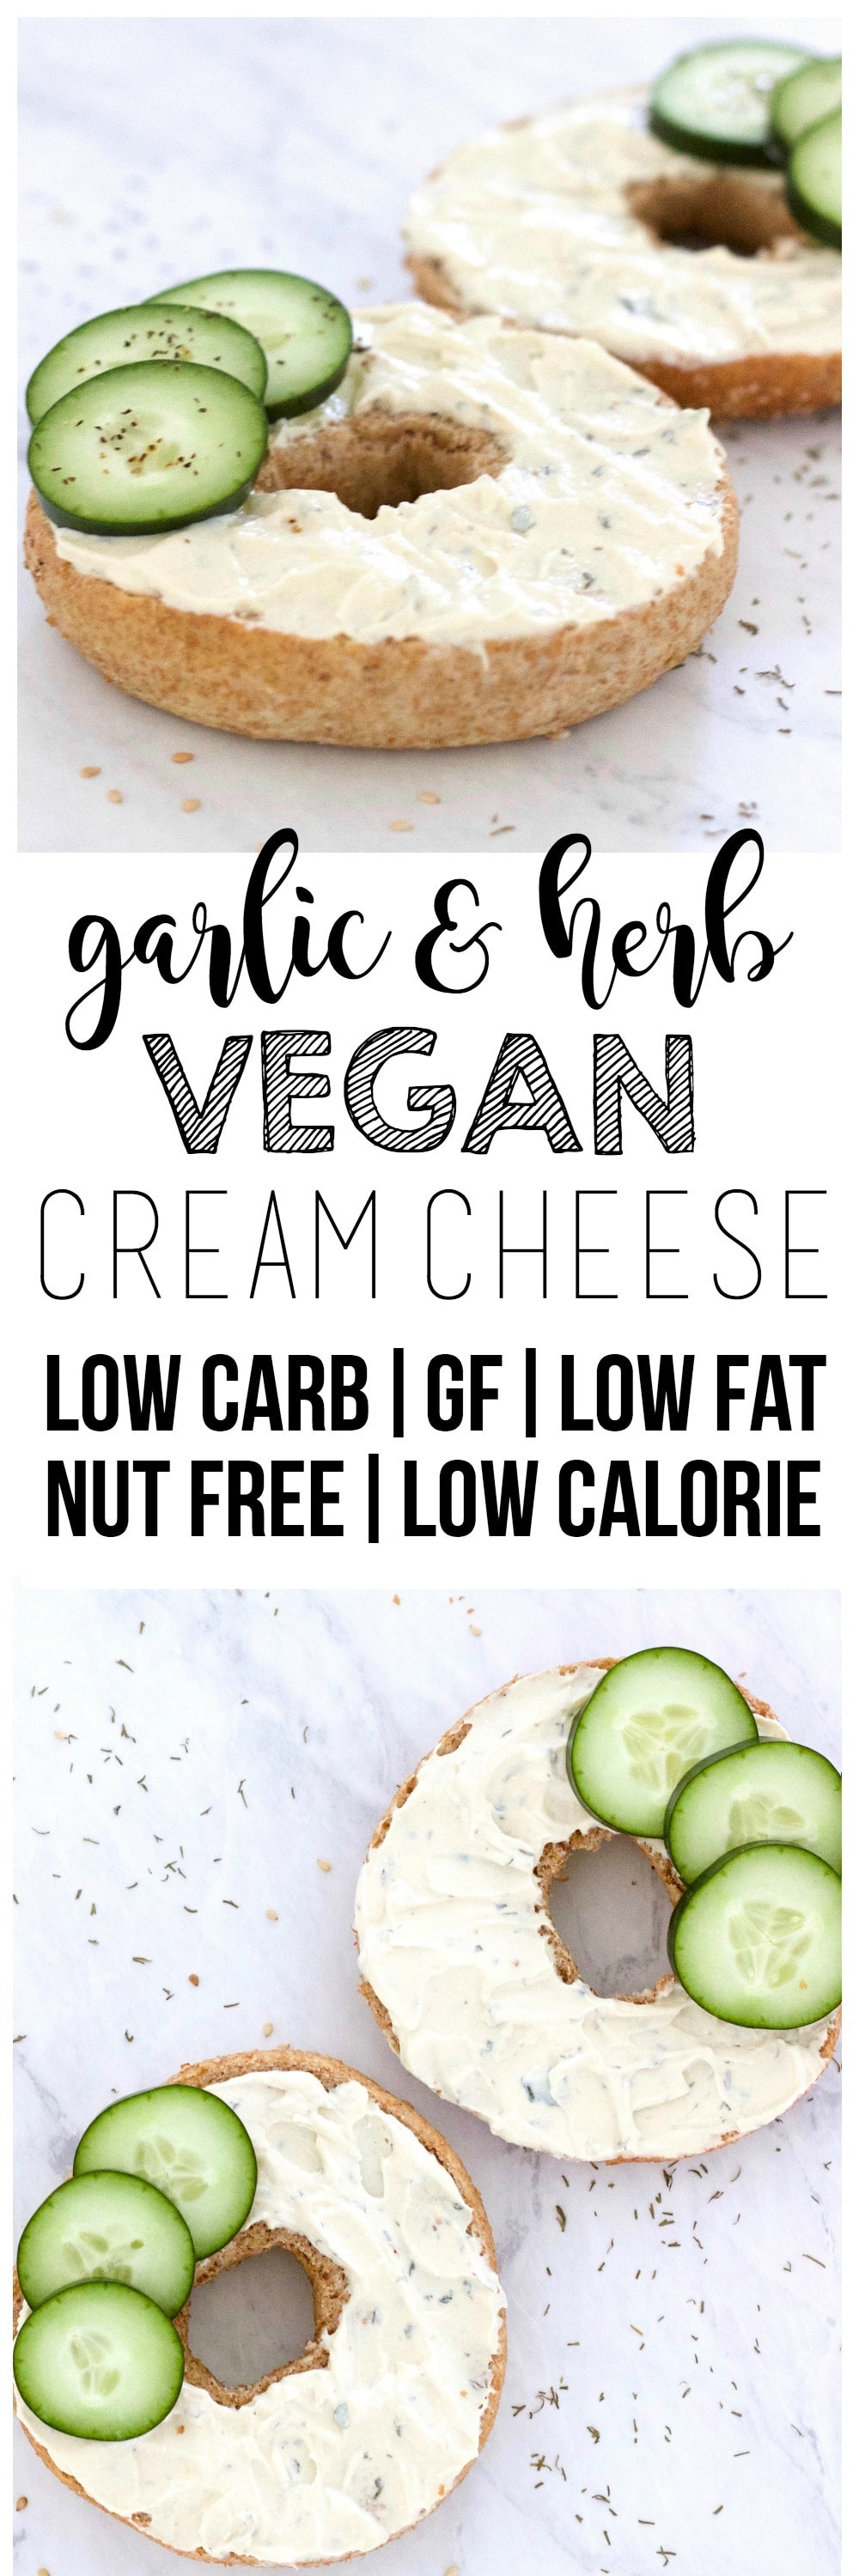 Garlic & Herb Vegan Cream Cheese! Made with tofu - perfectly creamy and spreadable! (Keto, Gluten-Free, Nut-Free, Oil-Free, Low-Fat, Low-Carb, Low-Calorie)